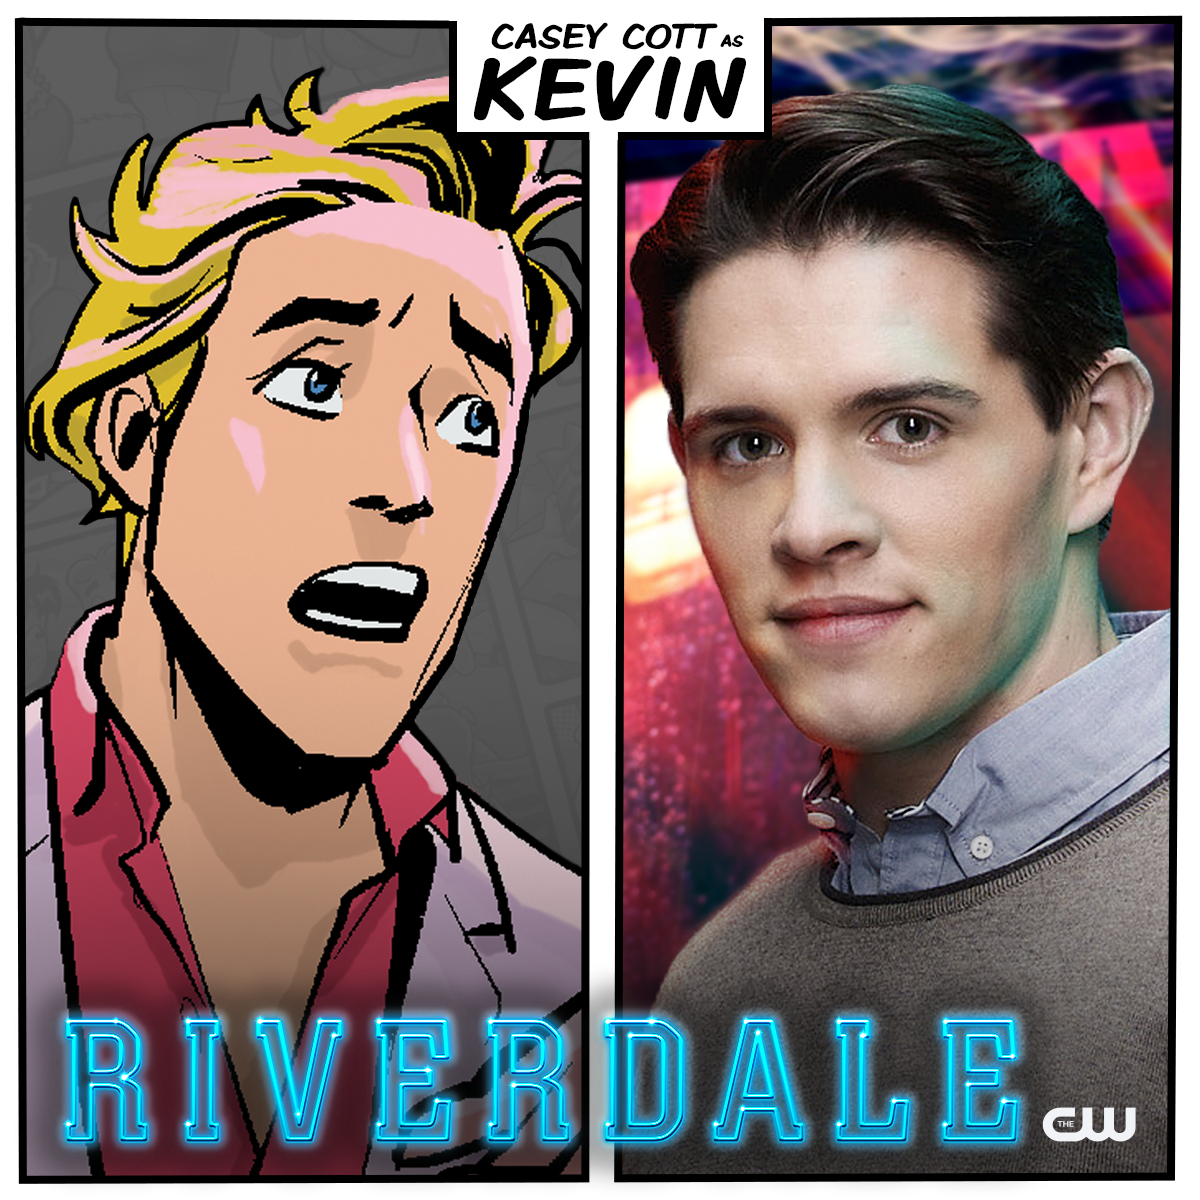 Riverdale Characters: From The World Of Archie Comics, Casey Cott Is Kevin On